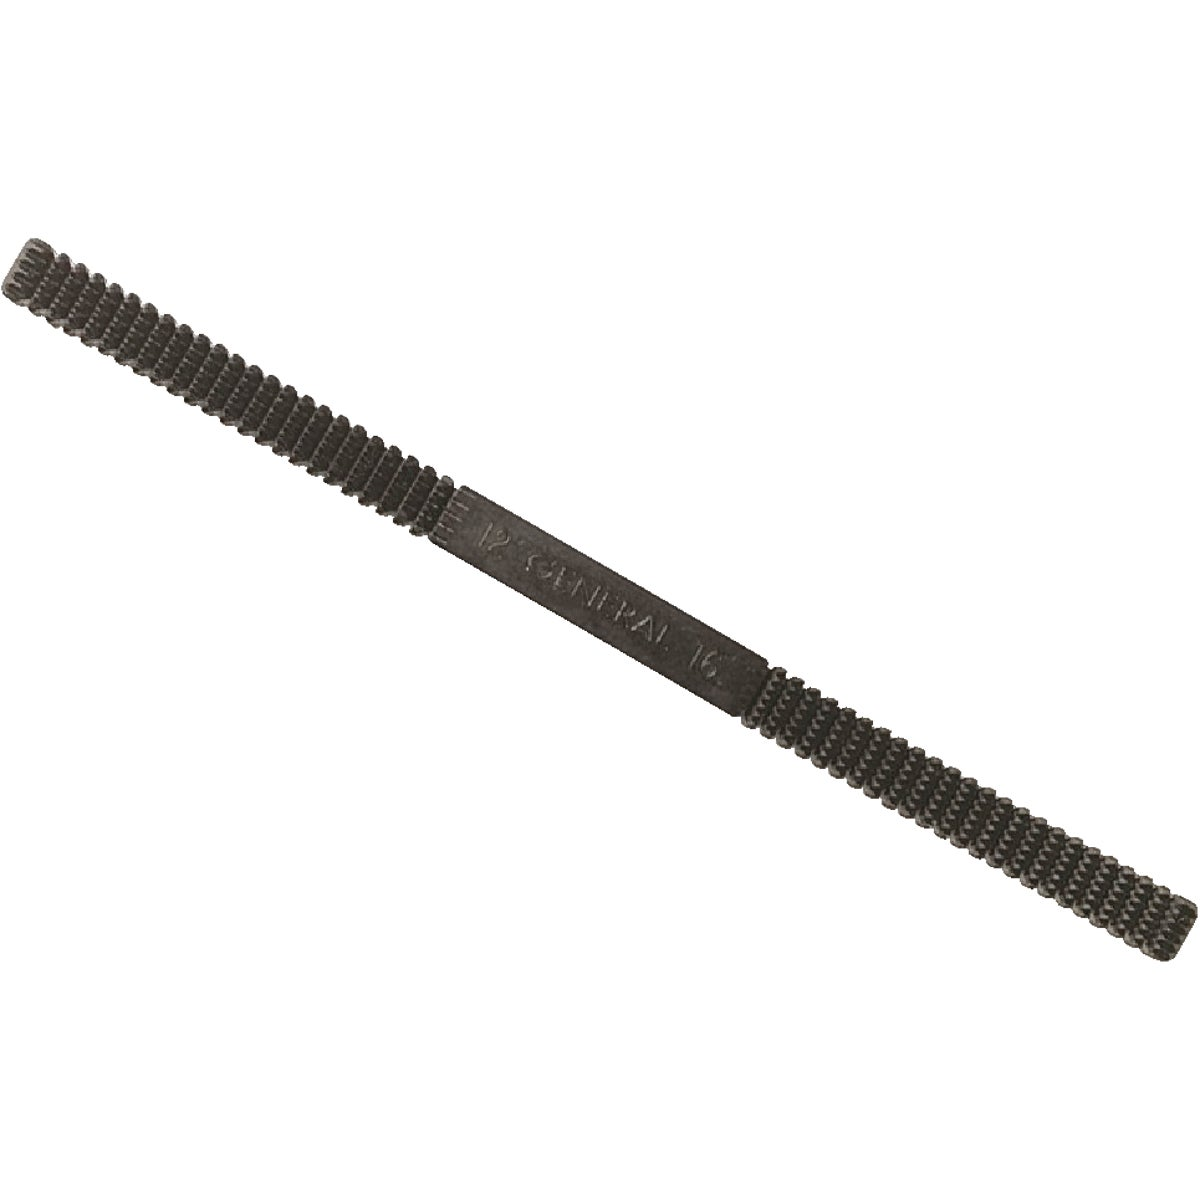 THREAD REPAIR FILE